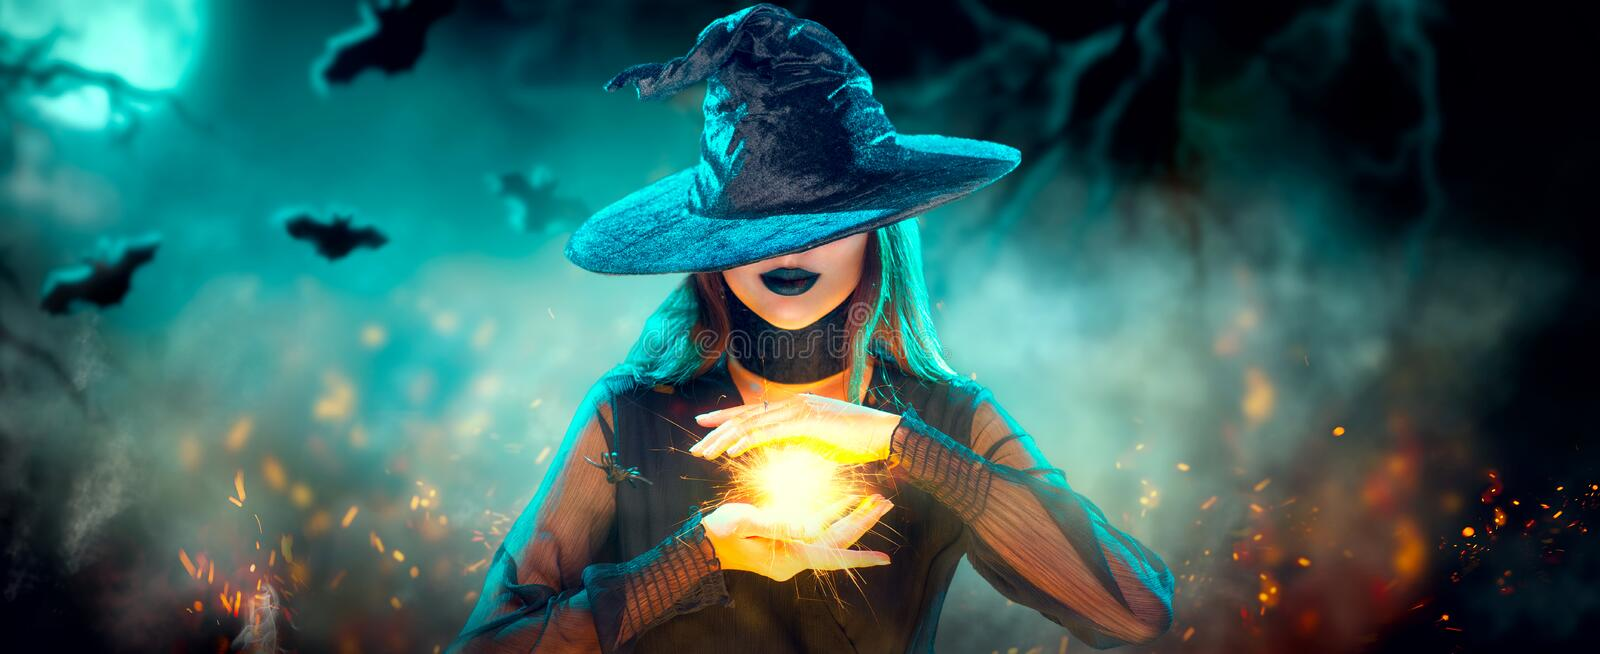 Halloween Witch girl with making witchcraft, magic in her hands, spells. Beautiful young woman in witches hat conjuring. Spooky dark magic forest background royalty free stock photo